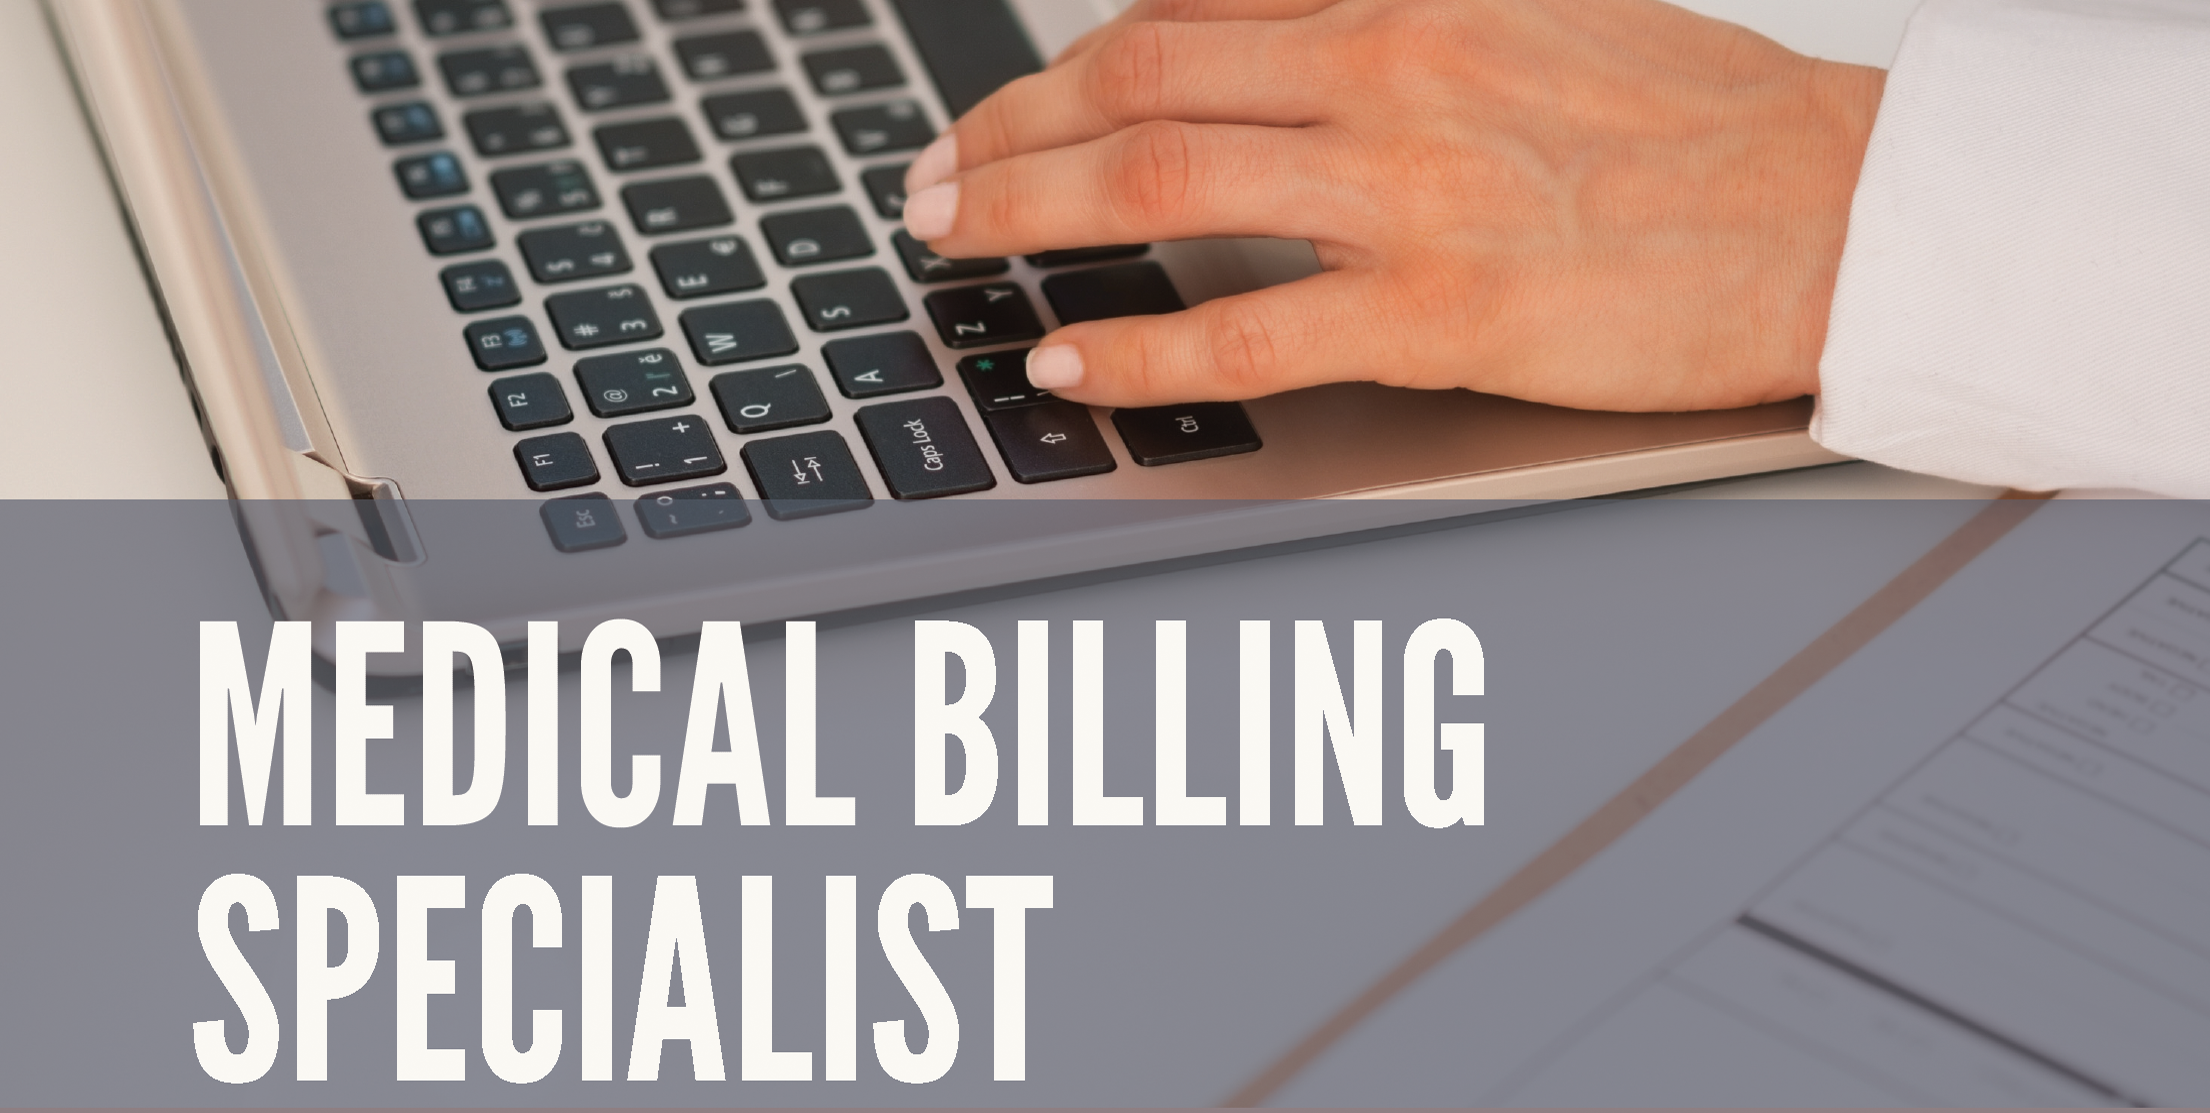 Medical Billing Specialist - Prepare for national certification through the National Health Career Association (NHA). This training uses MediSoft software for data entry, billing, payments, generating reports and sending claims electronically. Learn computerized medical billing procedures, including how to enter patient information, patient demographics and charges, and how to post patient and insurance payments. Gain a fundamental knowledge of medical insurance billing, claims processing, major insurance carriers, managed care, accounts receivable management, and the basics of coding.Course Duration: 7 weeks